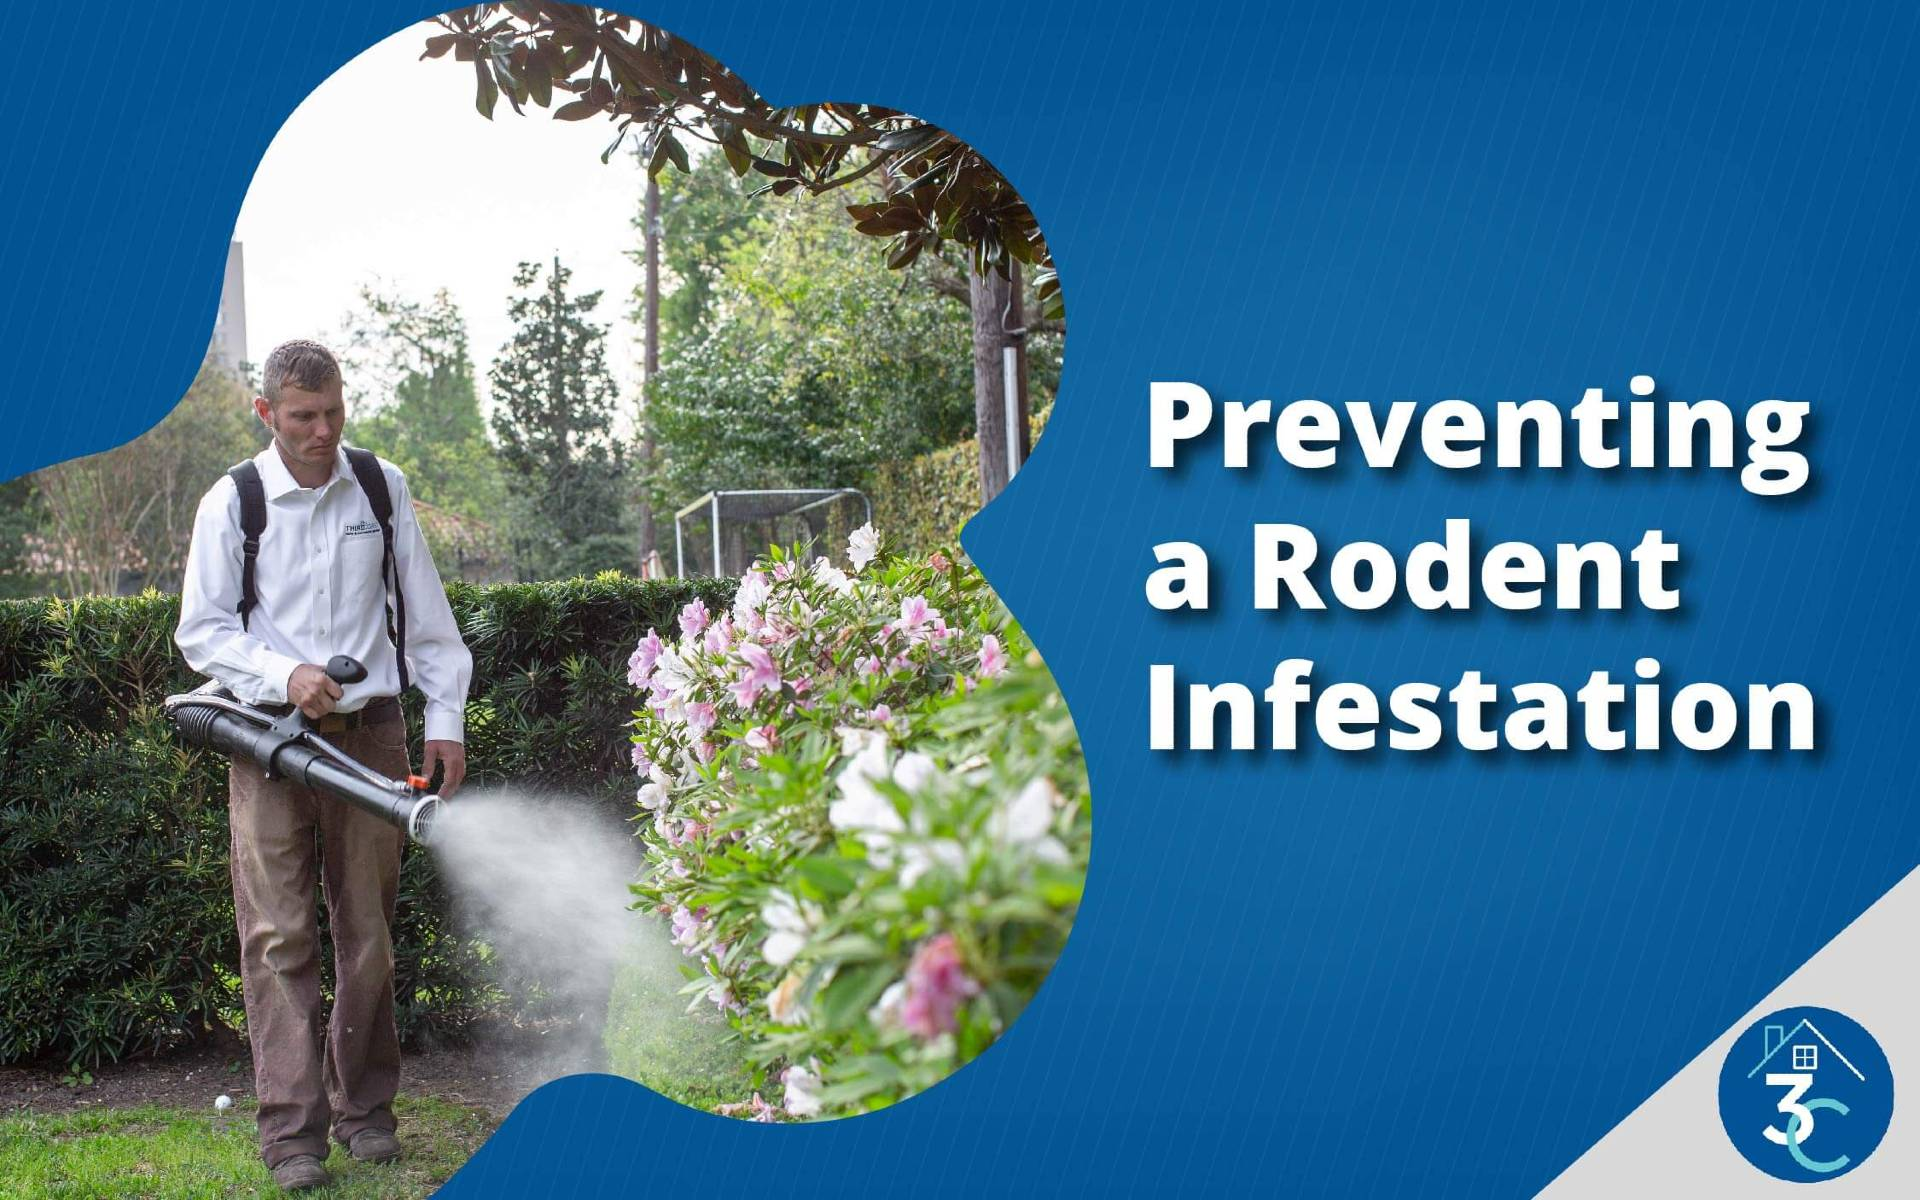 Preventing a Rodent Infestation